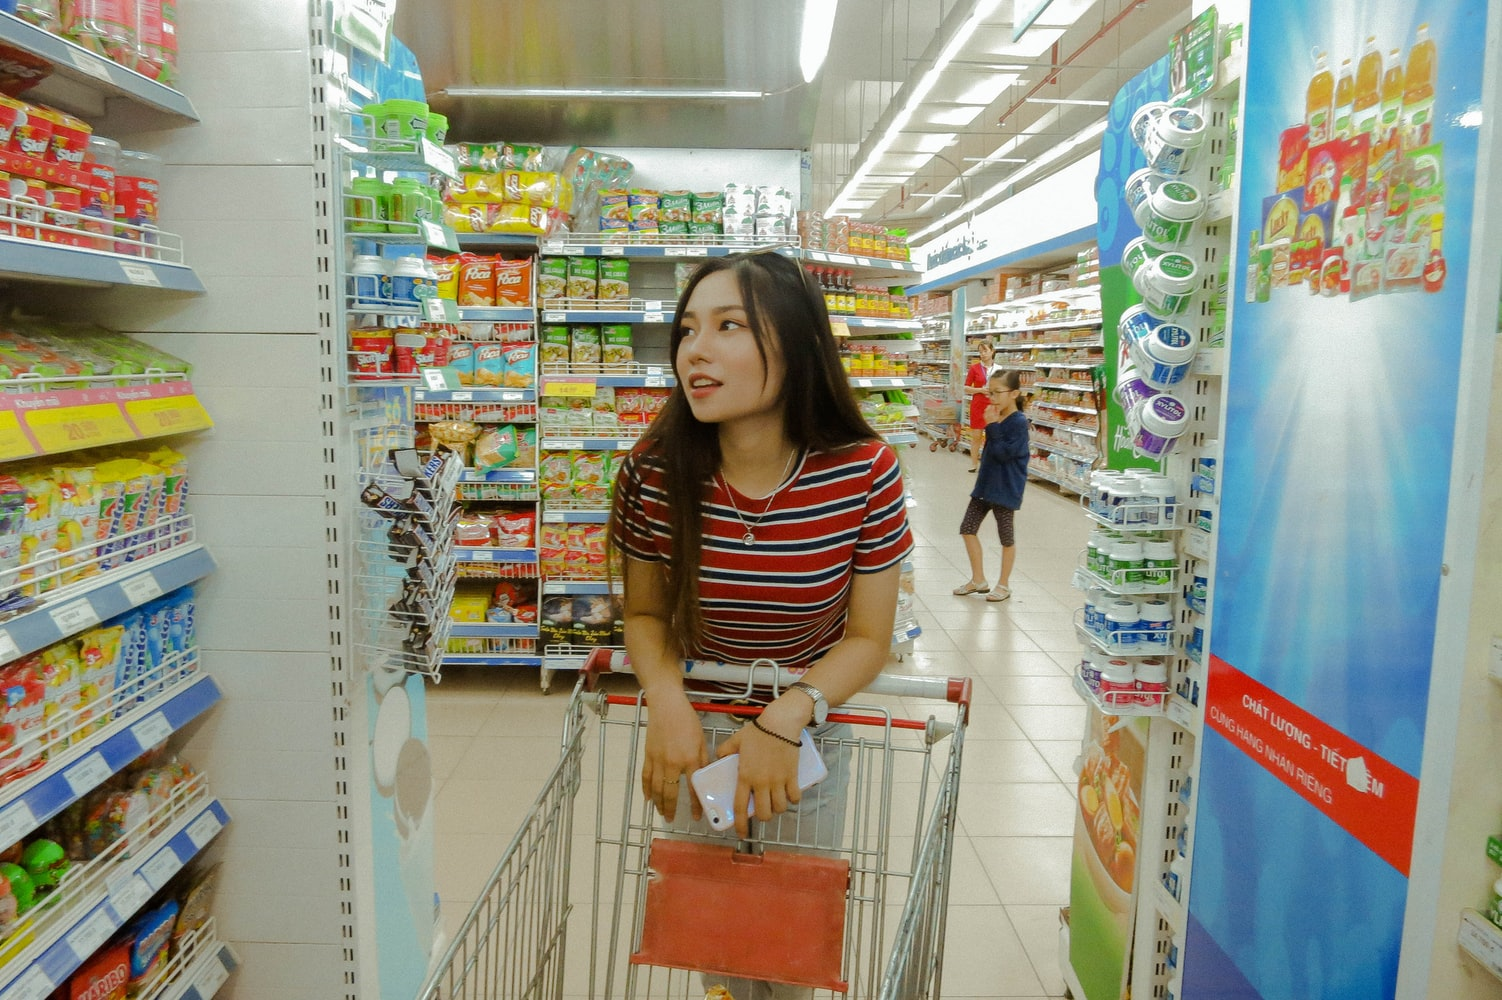 Rethinking Brick-And-Mortar Grocery for 2021